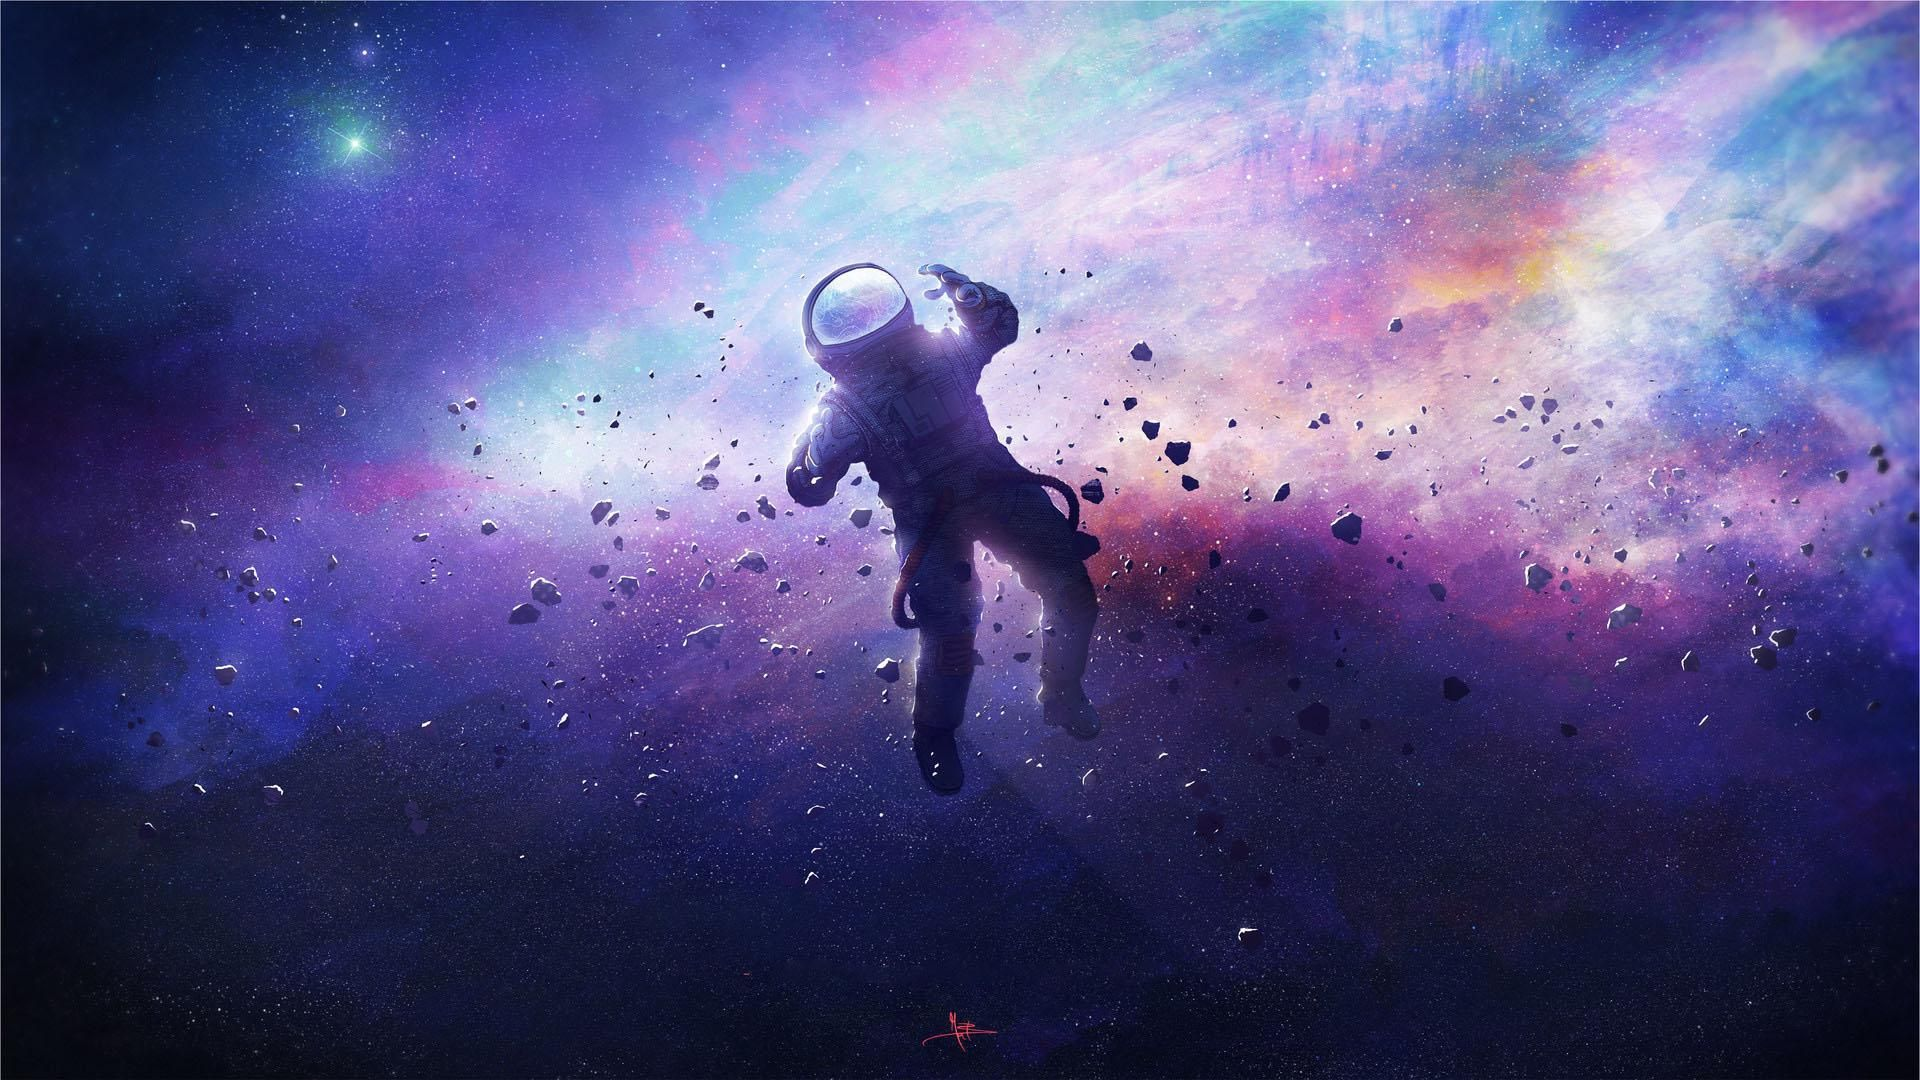 Astronaut 2 [1920x1080] (without text) imagens